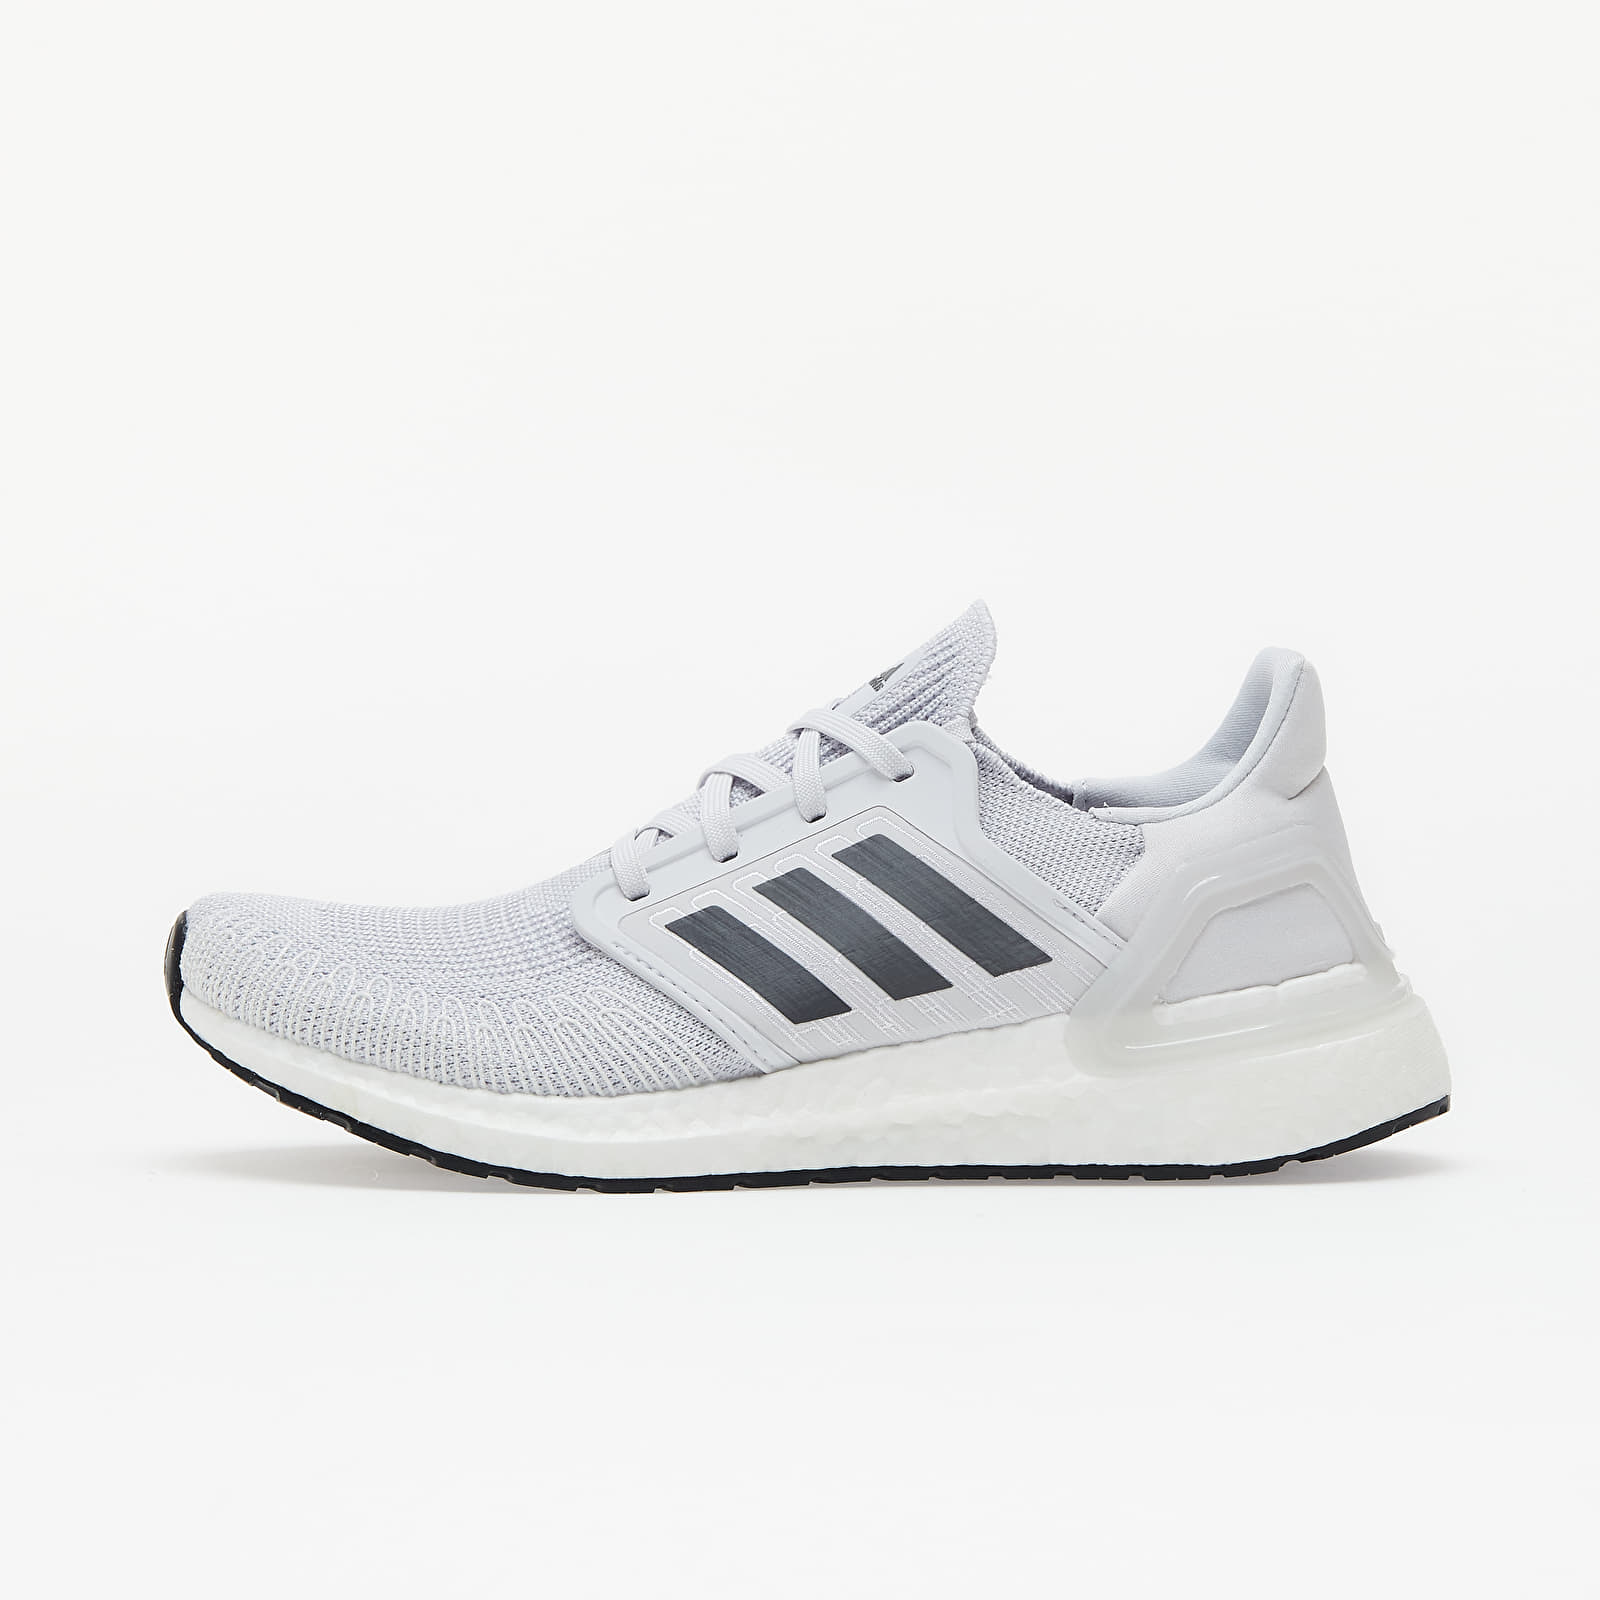 Chaussures et baskets homme adidas UltraBOOST 20 Dash Grey/ Grey Five/ Solid Red